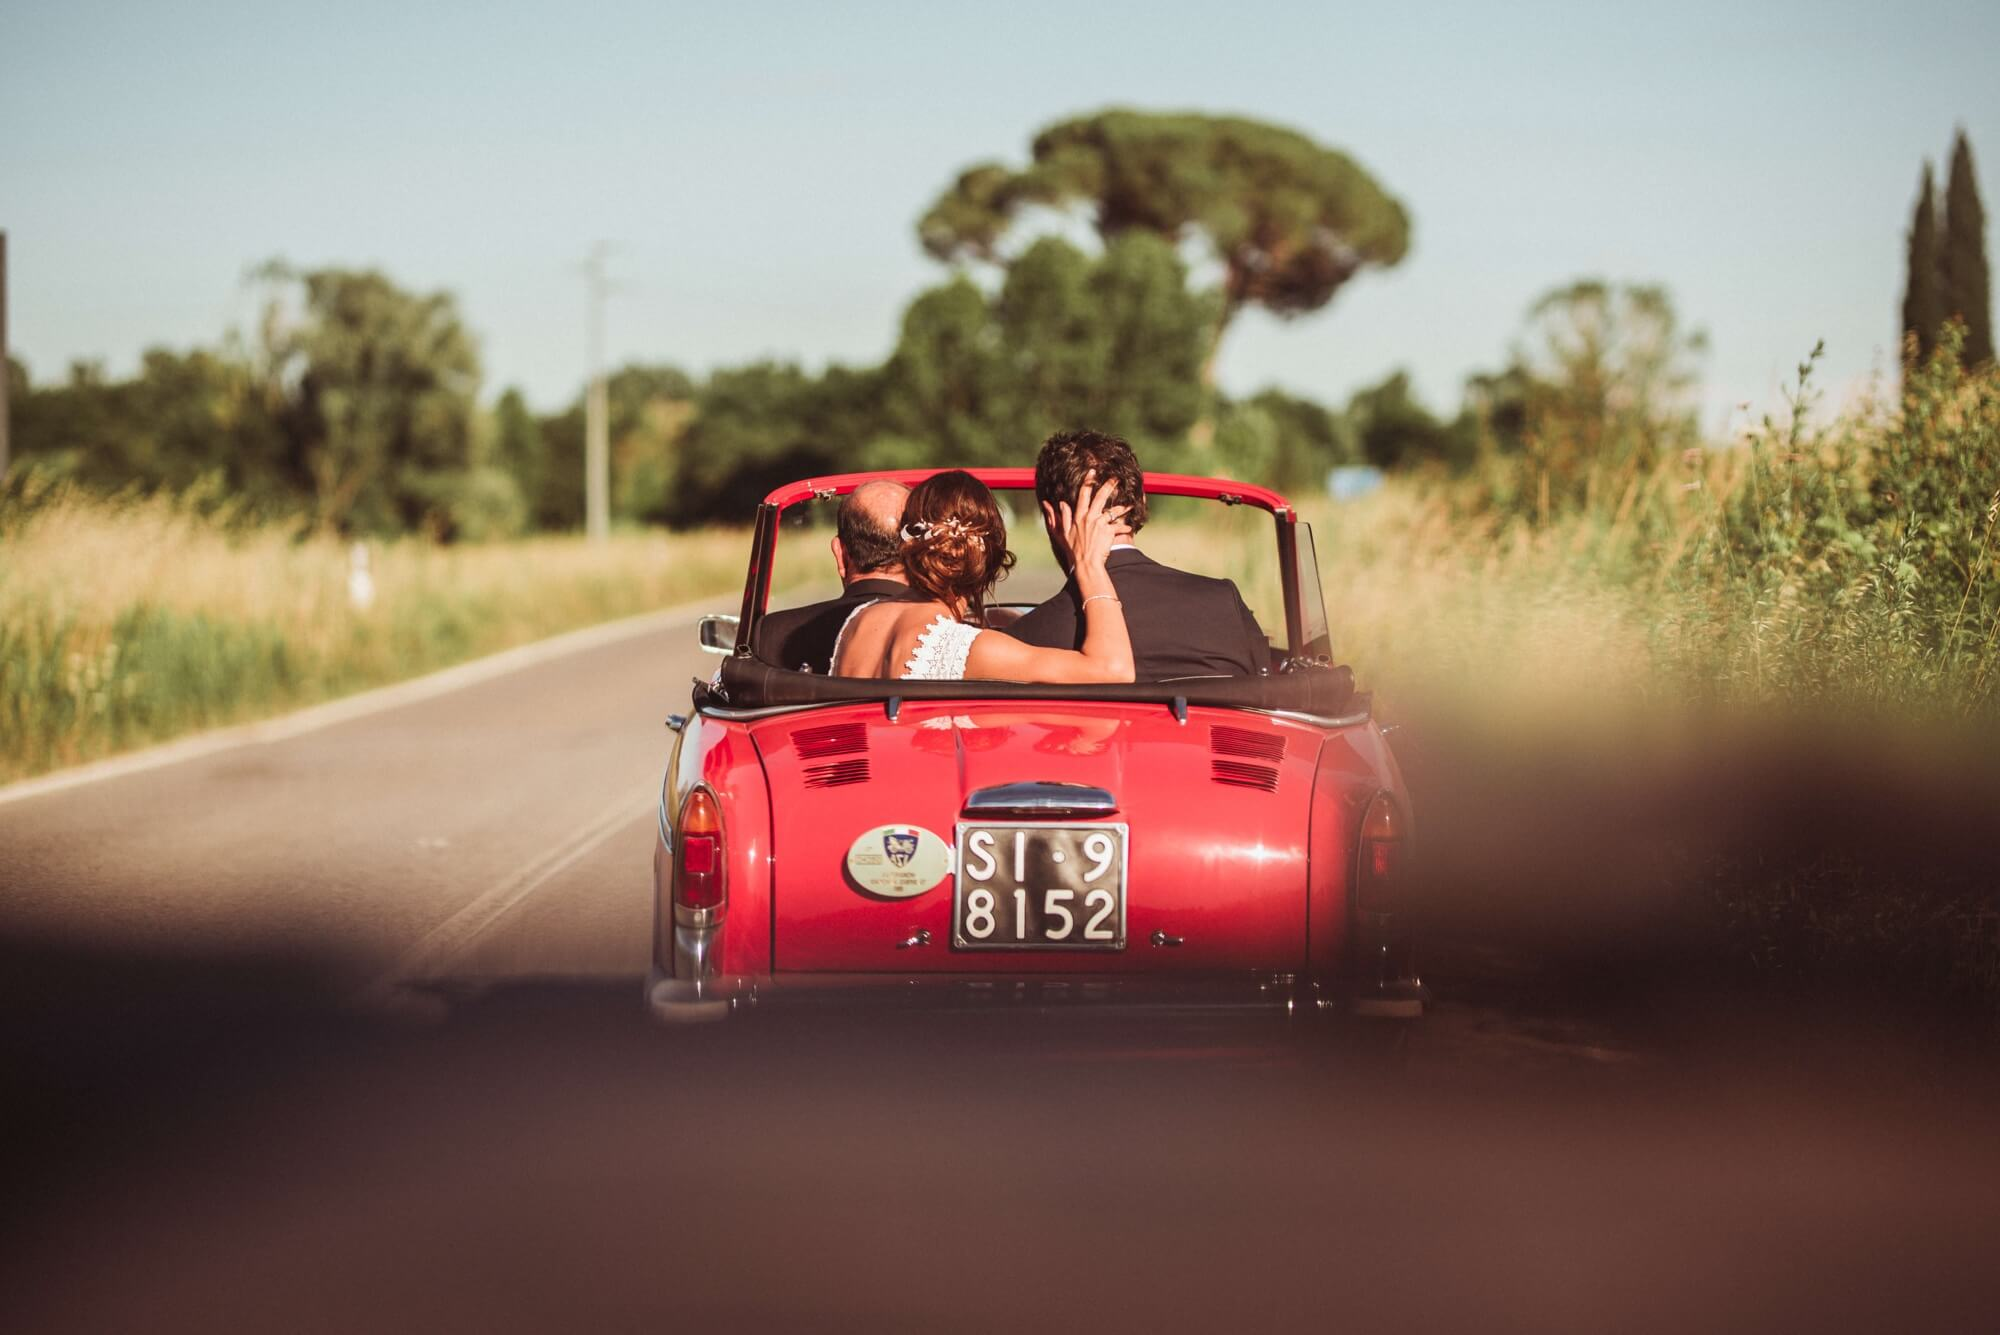 Classic car rental for destination wedding in Tuscany Chianti Florence Val d'Orcia.  Giulia Alessandri Wedding Planner, Wedding Design & Wedding Coordination in Tuscany.